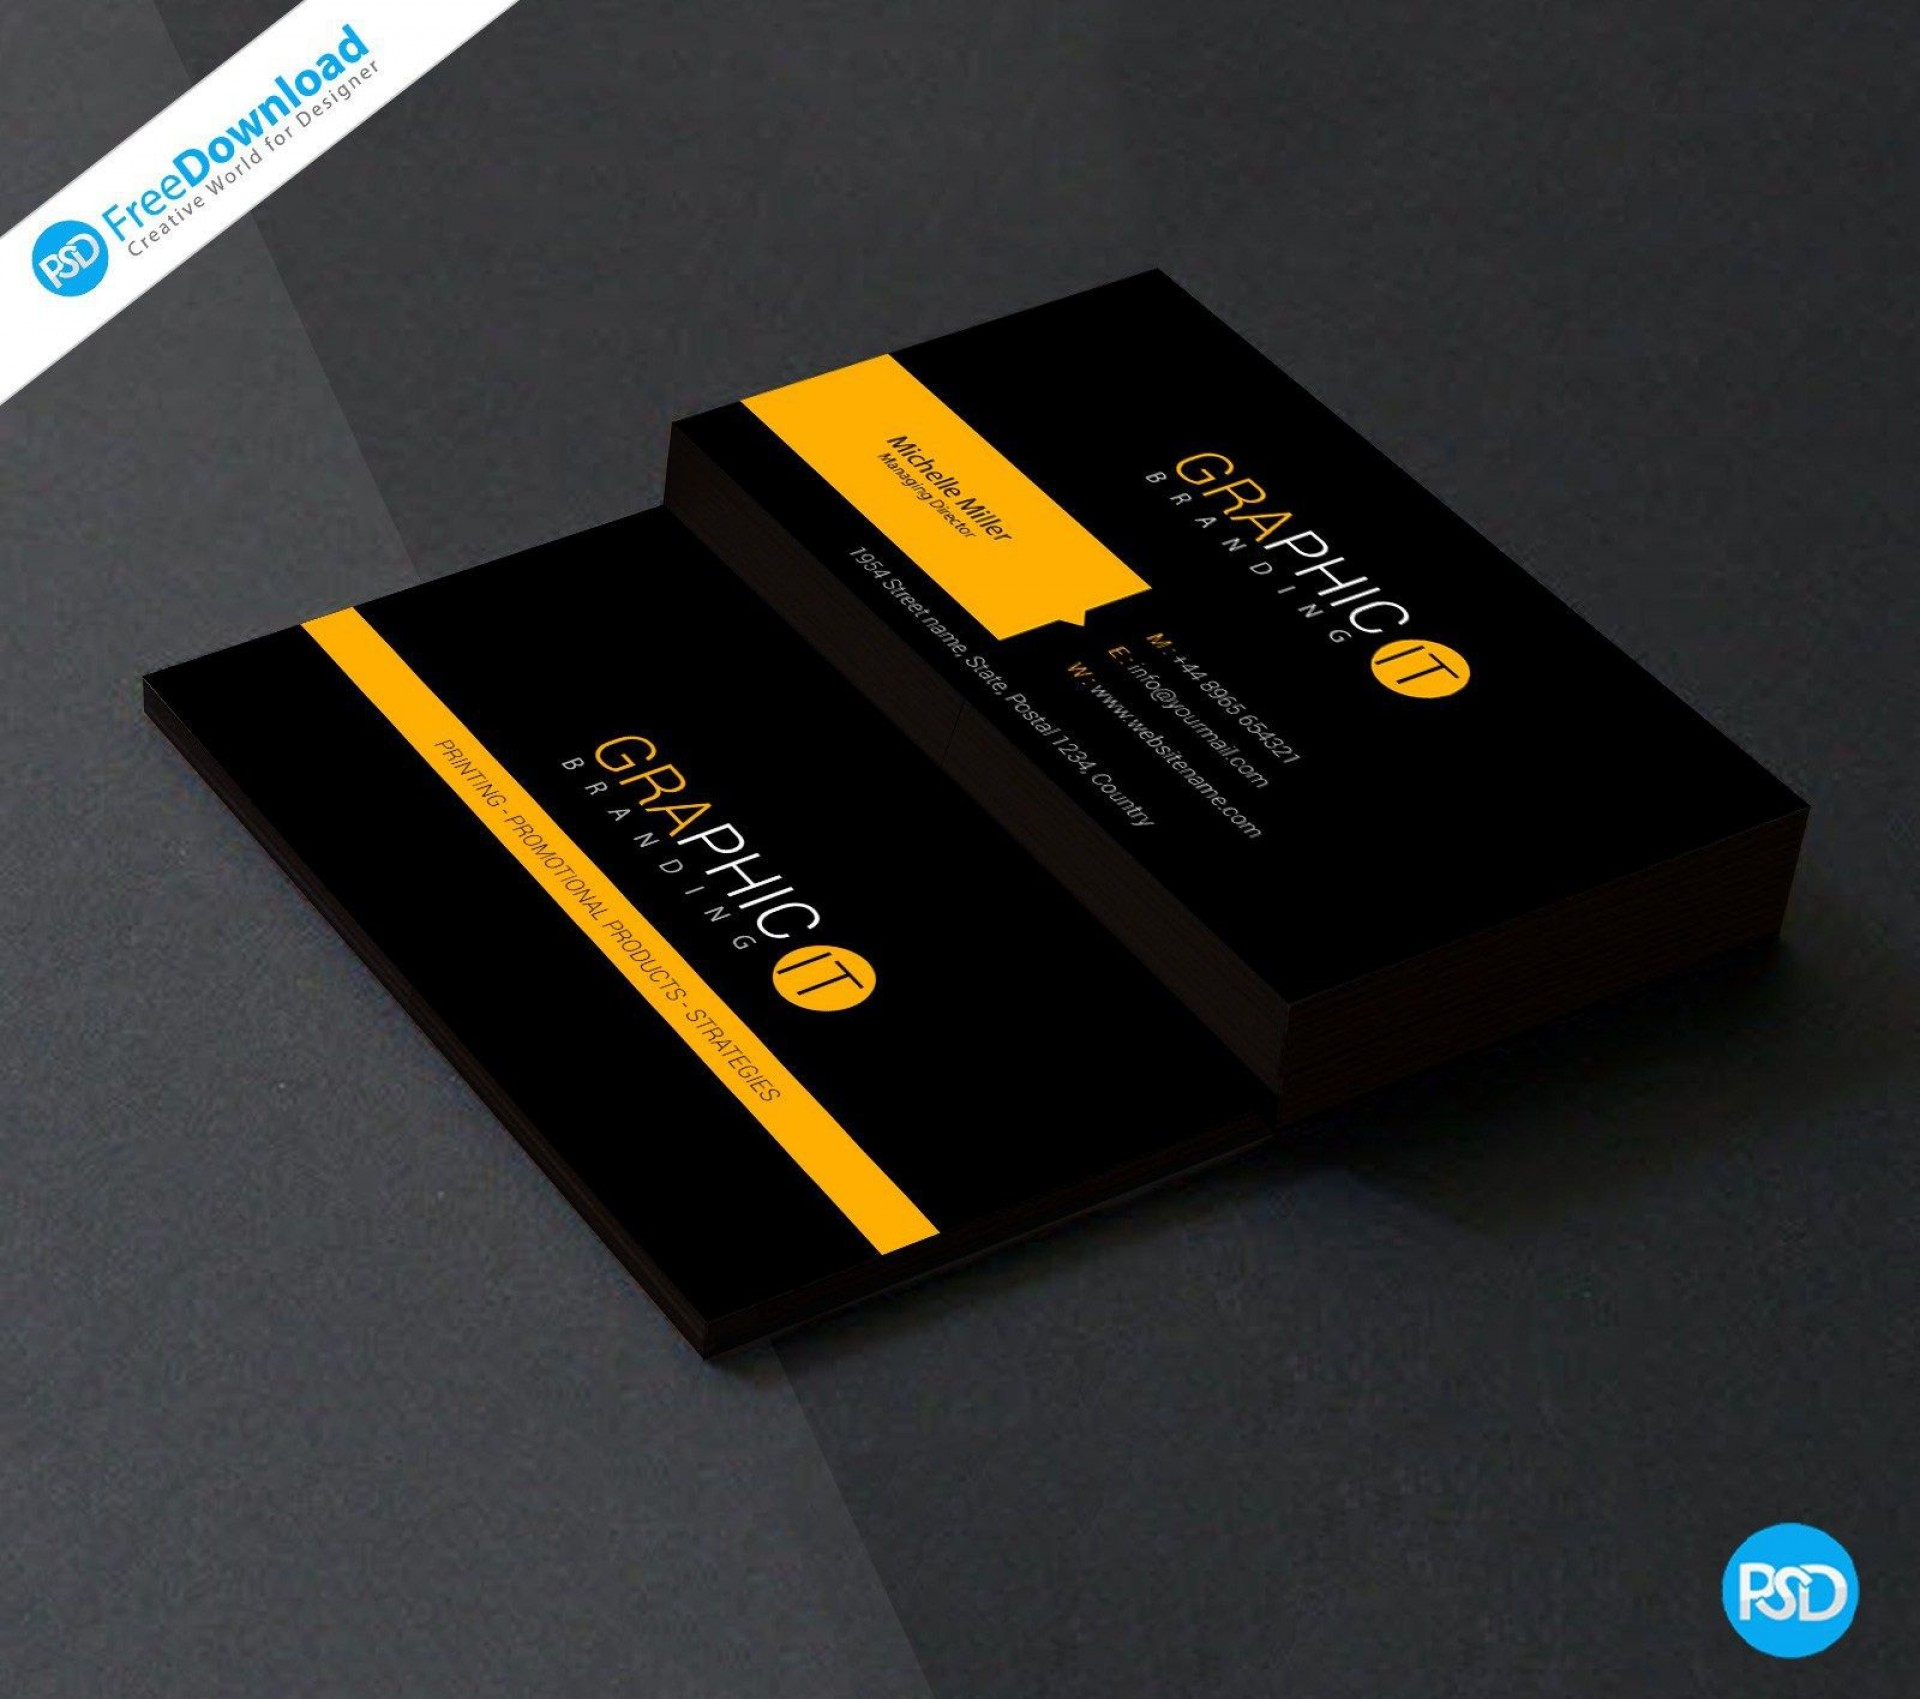 001 Archaicawful Free Blank Busines Card Template Photoshop Photo  Download Psd1920